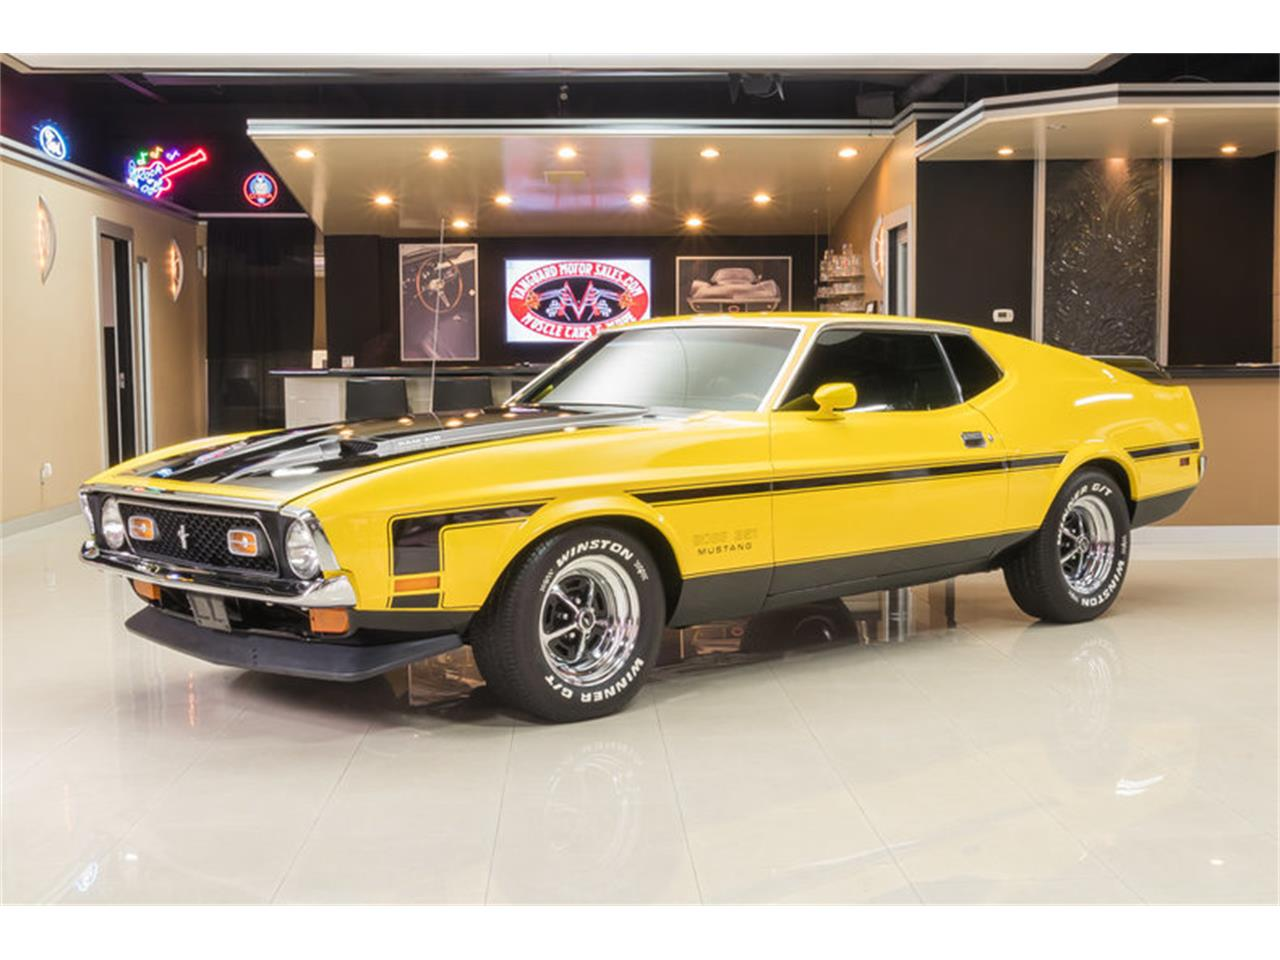 Large picture of 72 mustang boss 351 recreation jgdo